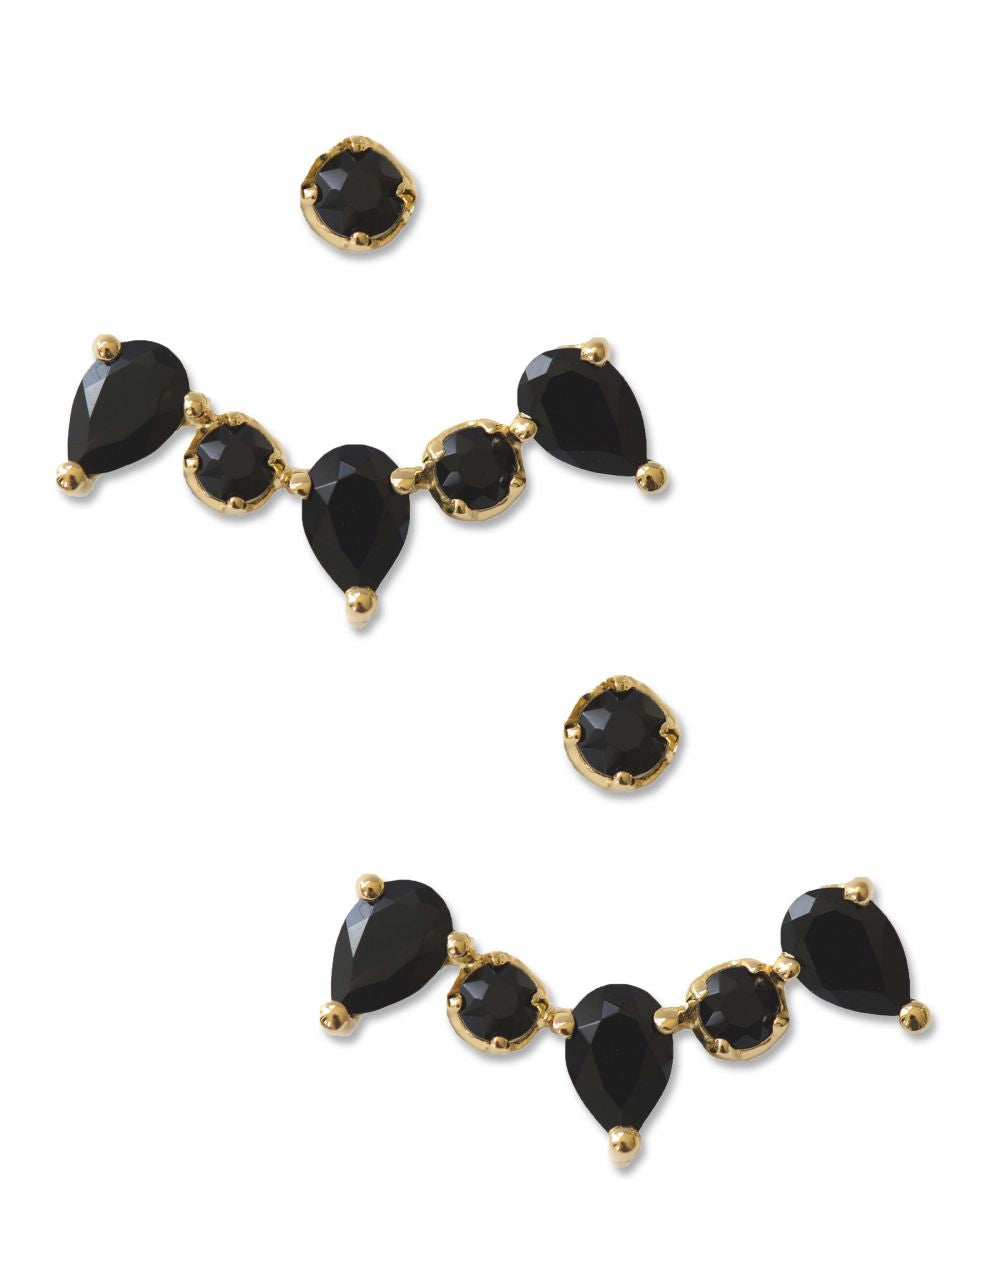 Clara Ear Jackets<br /><i><small>18K Gold Plated with Black Onyx</small></i><br />